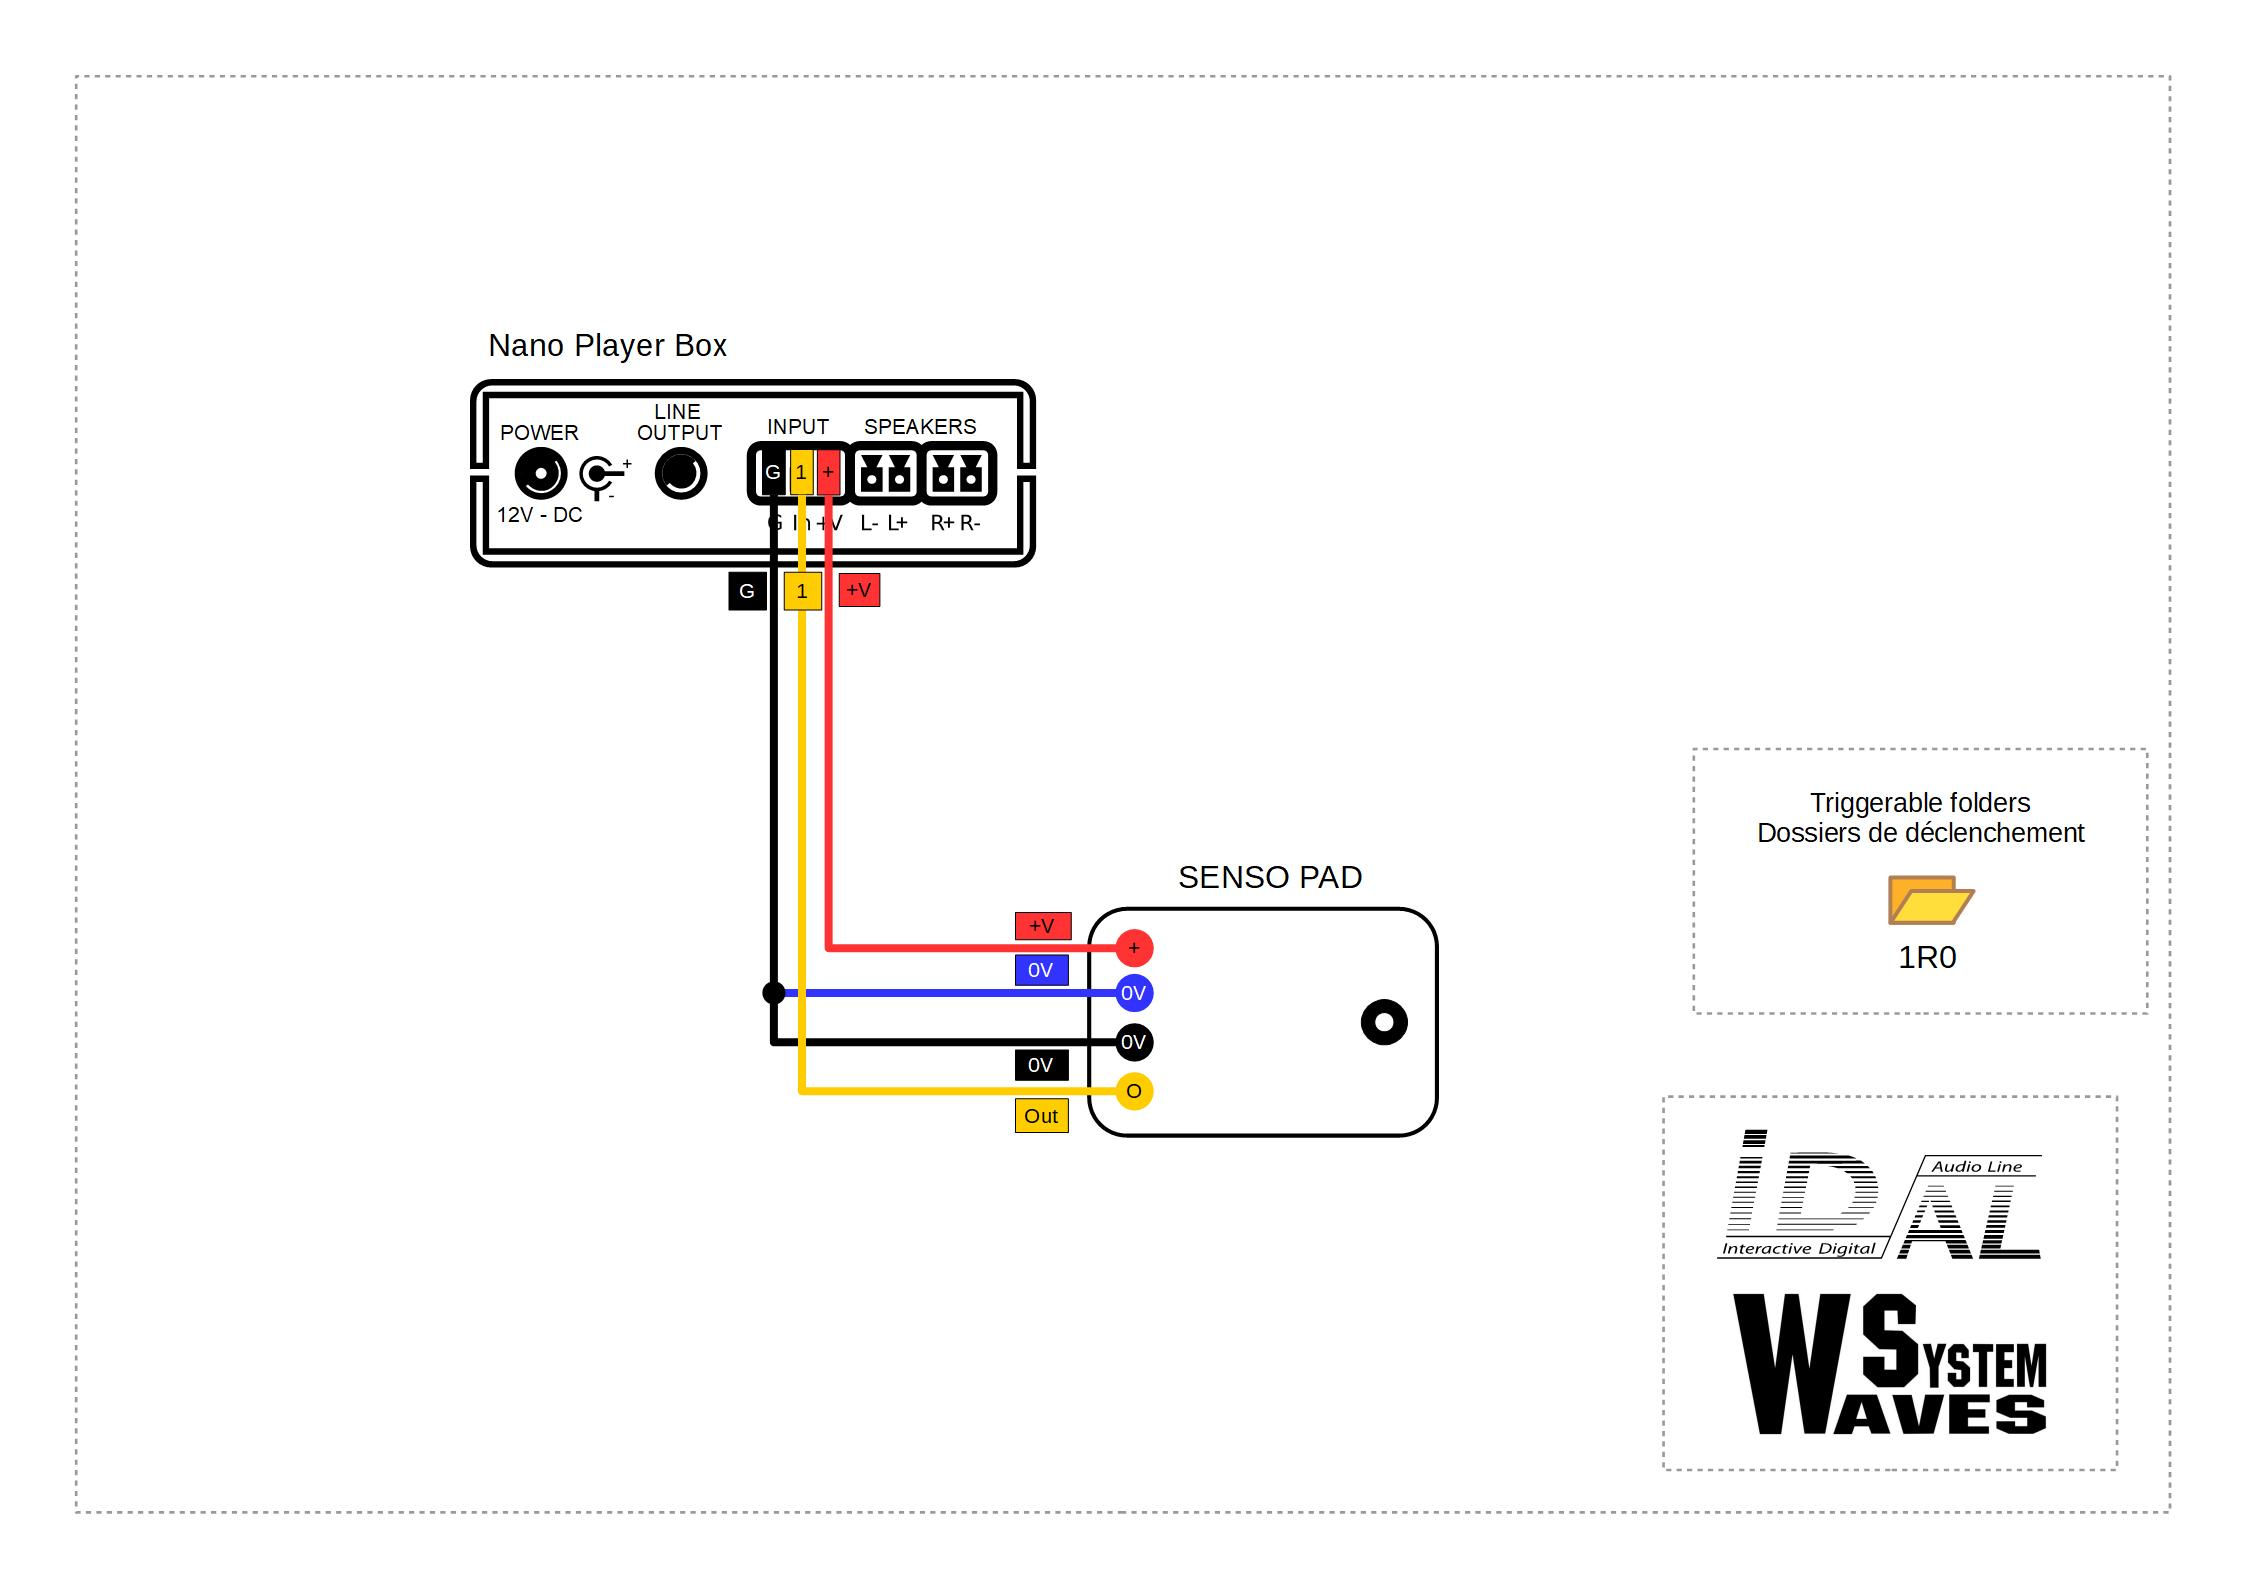 Event Wiring Diagram Simple Post Landscape Senso Pad Interactive